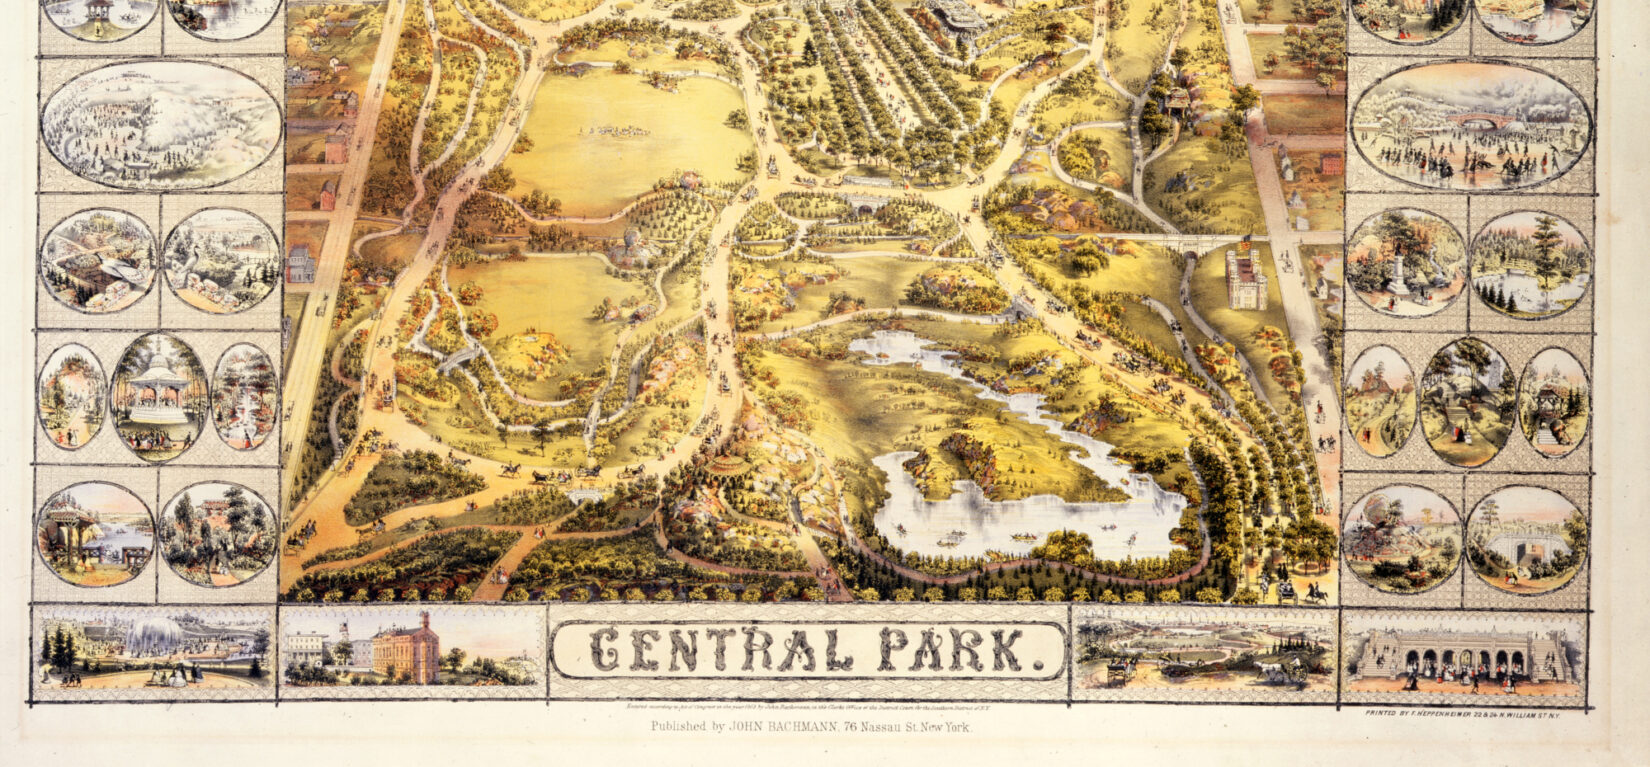 """Lionel Pincus and Princess Firyal Map Division, The New York Public Library. """"Central Park"""" The New York Public Library Digital Collections.1863."""